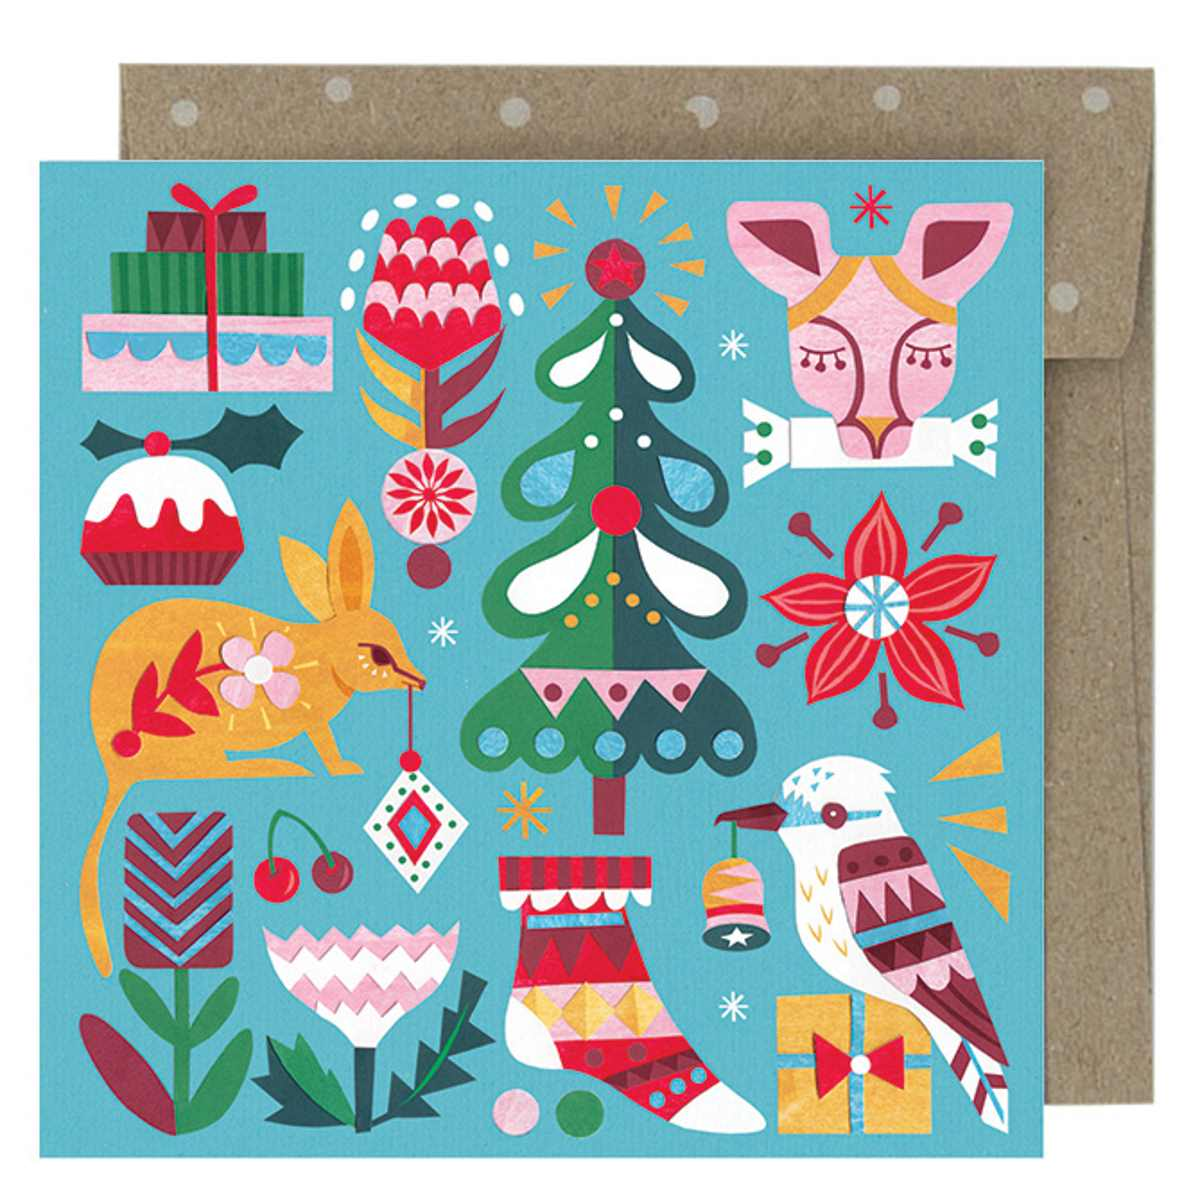 Boxed Christmas Cards 'Bushland Greetings' - Pack of 8 - Card - Throw Some Seeds - Australian gardening gifts and eco products online!